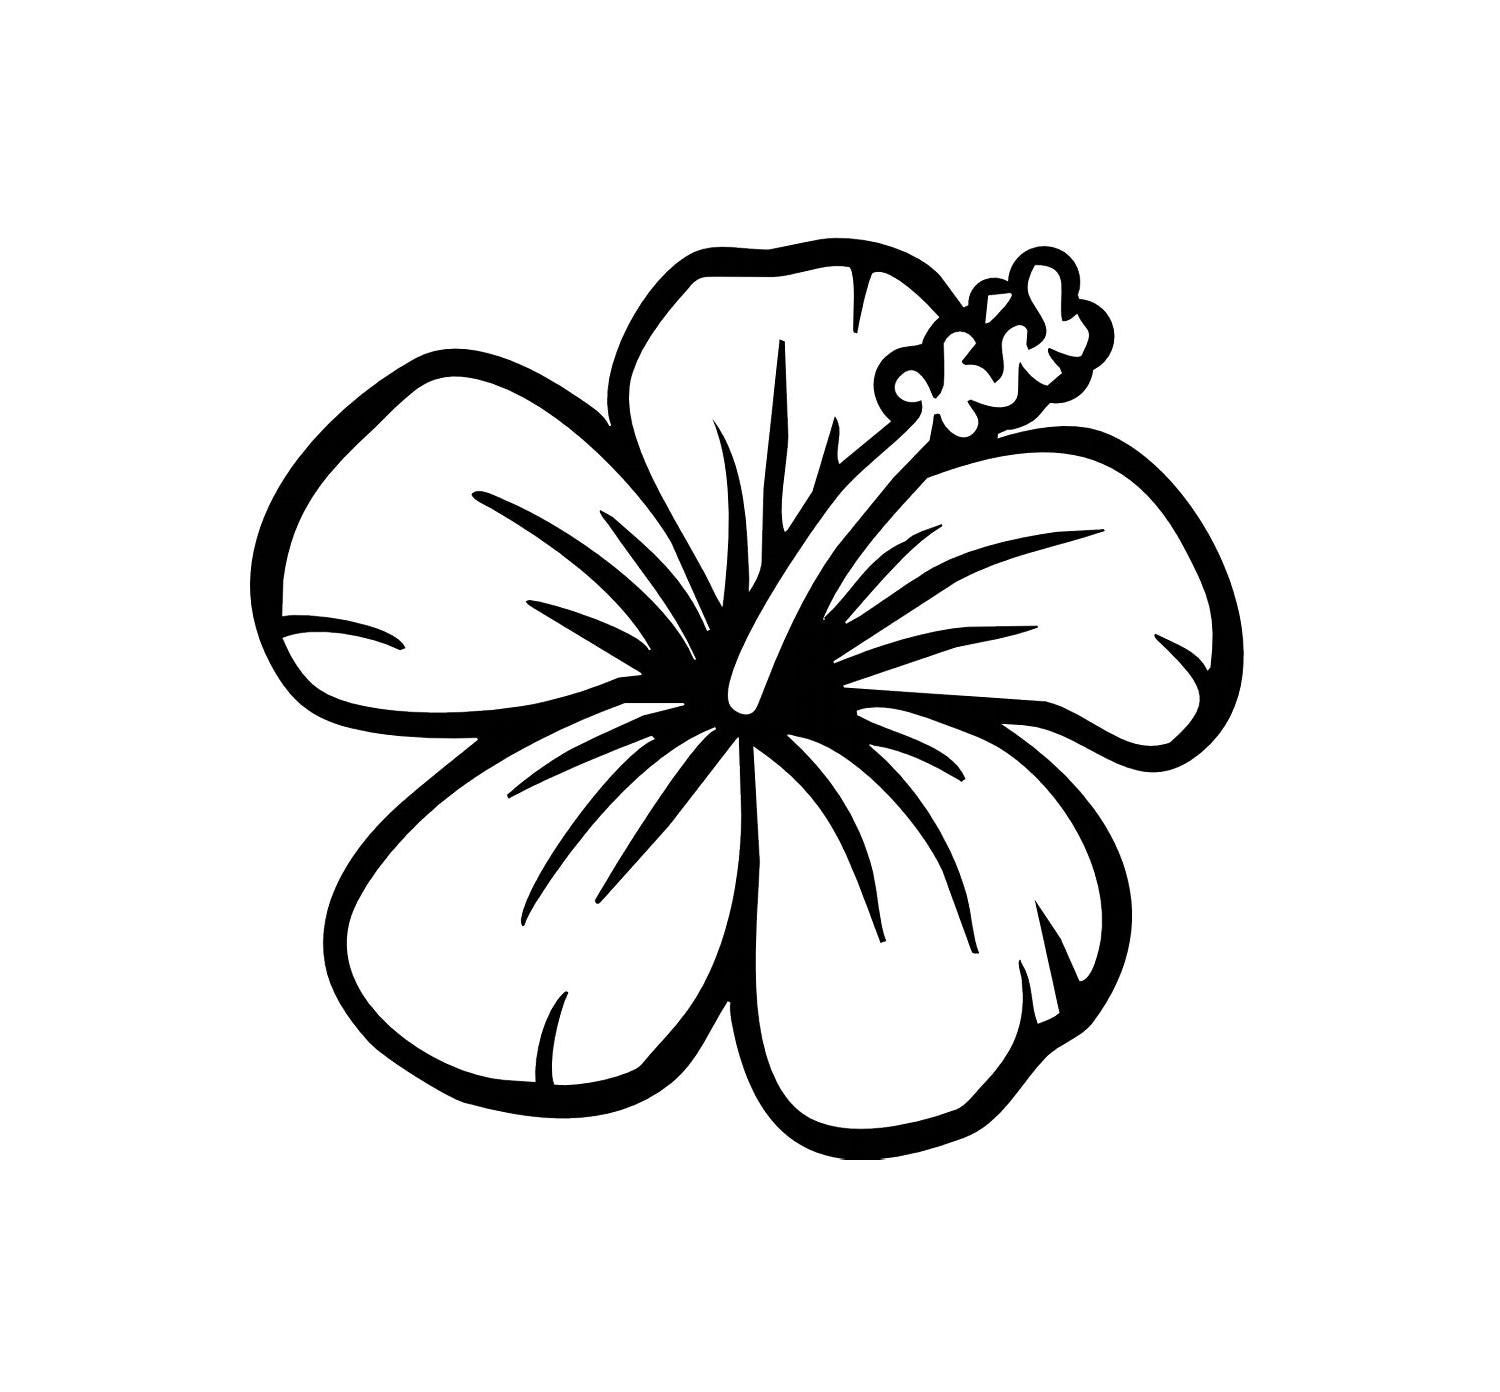 1500x1392 Hawaii Flowers Drawing Easy Leaf Outline Image